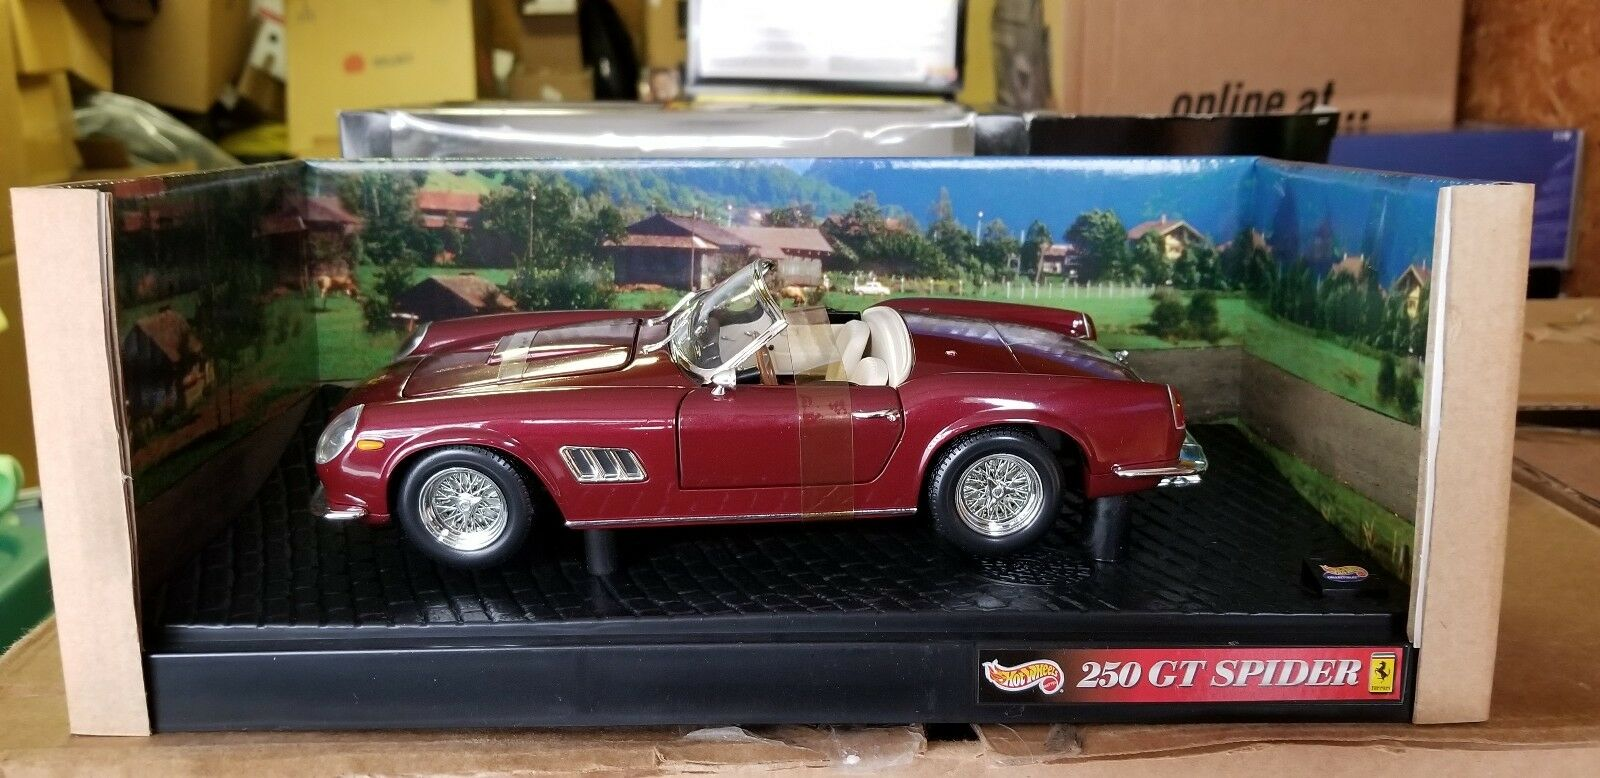 1 18 Hot Wheels Ferrari 250 GT Spider rojo